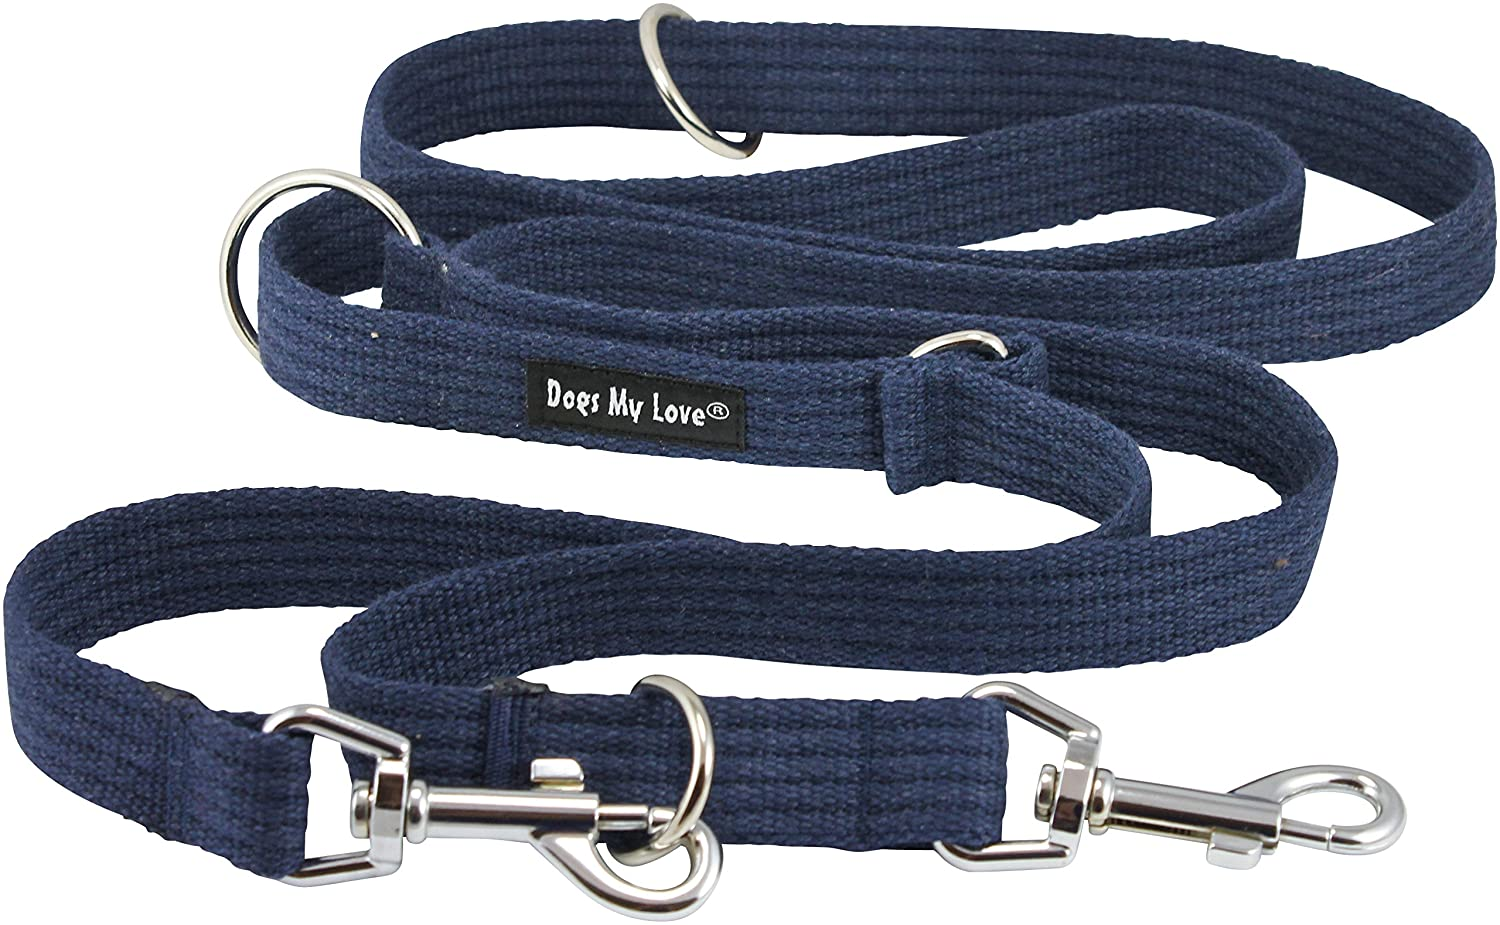 bluee 1  Wide Organic Cotton Web 6-Way European Multi-functional Dog Leash, Adjustable Lead 45 -78  Long, Large (bluee)